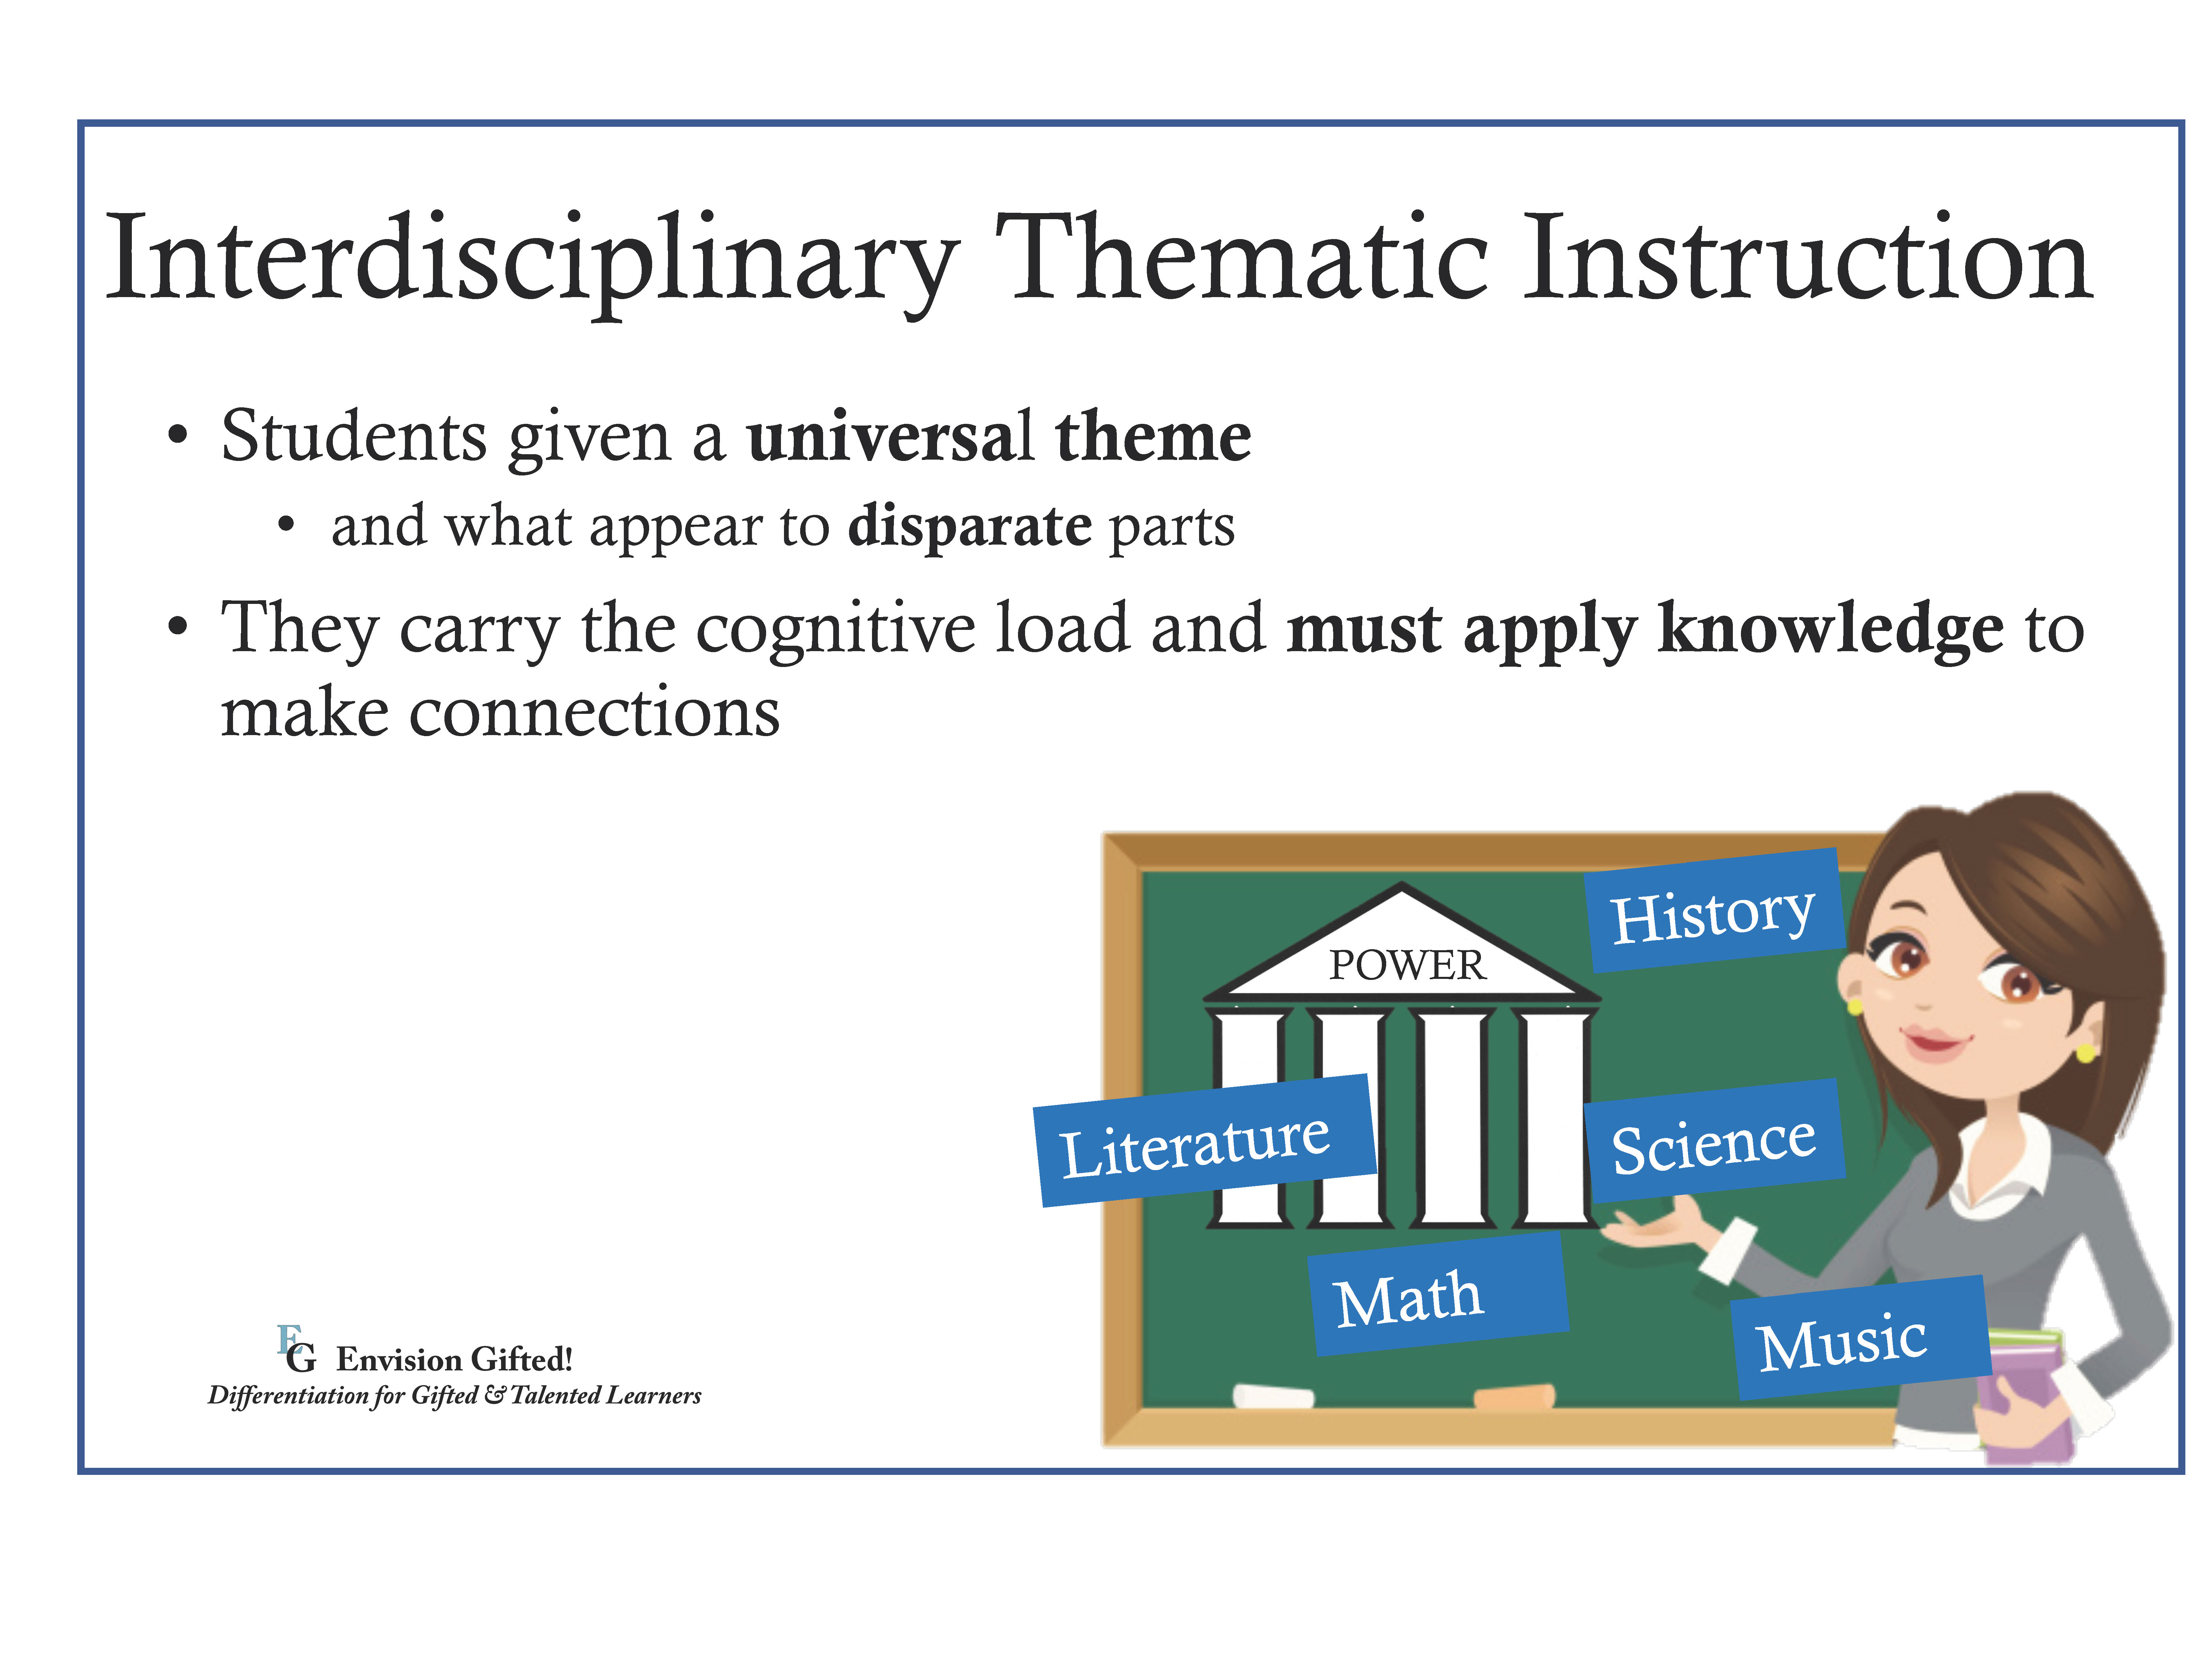 Envision Gifted. Interdisciplinary Thematic Instruction